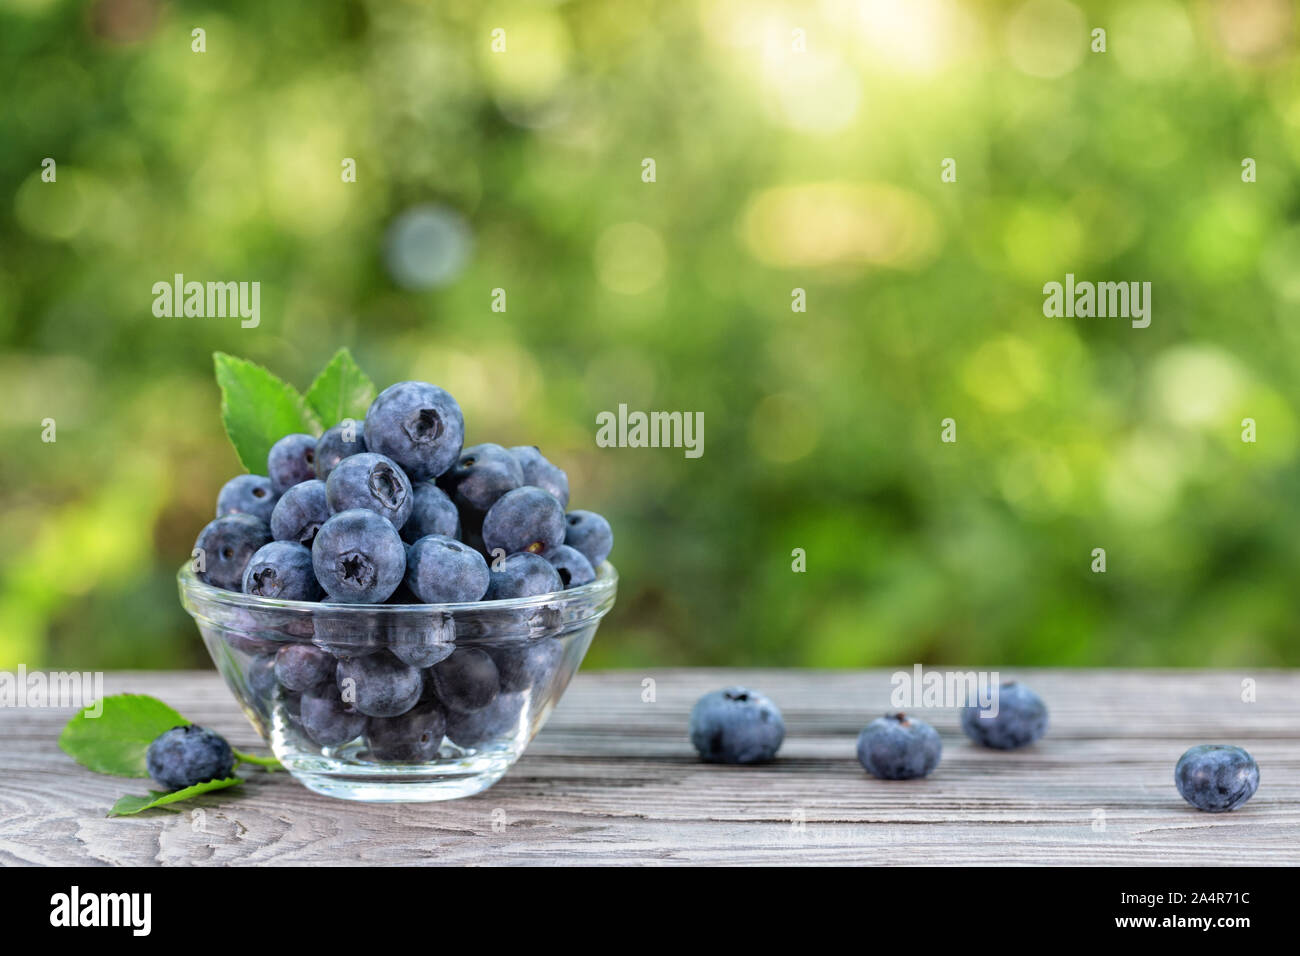 Blueberries in glass bowl and scattered on wooden table. Summer still life Stock Photo